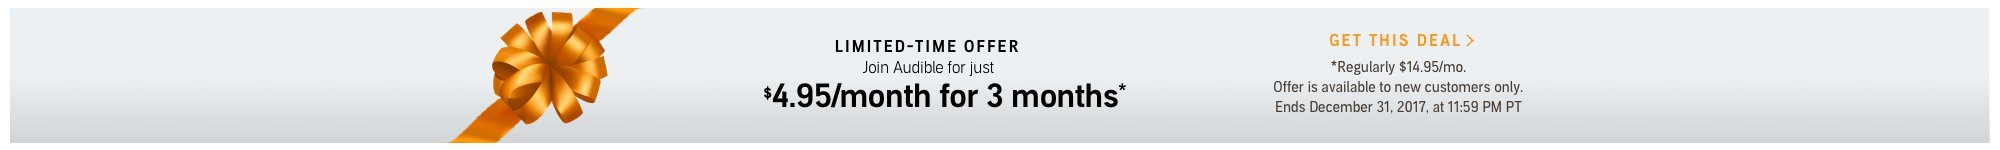 Limited Time Offer.